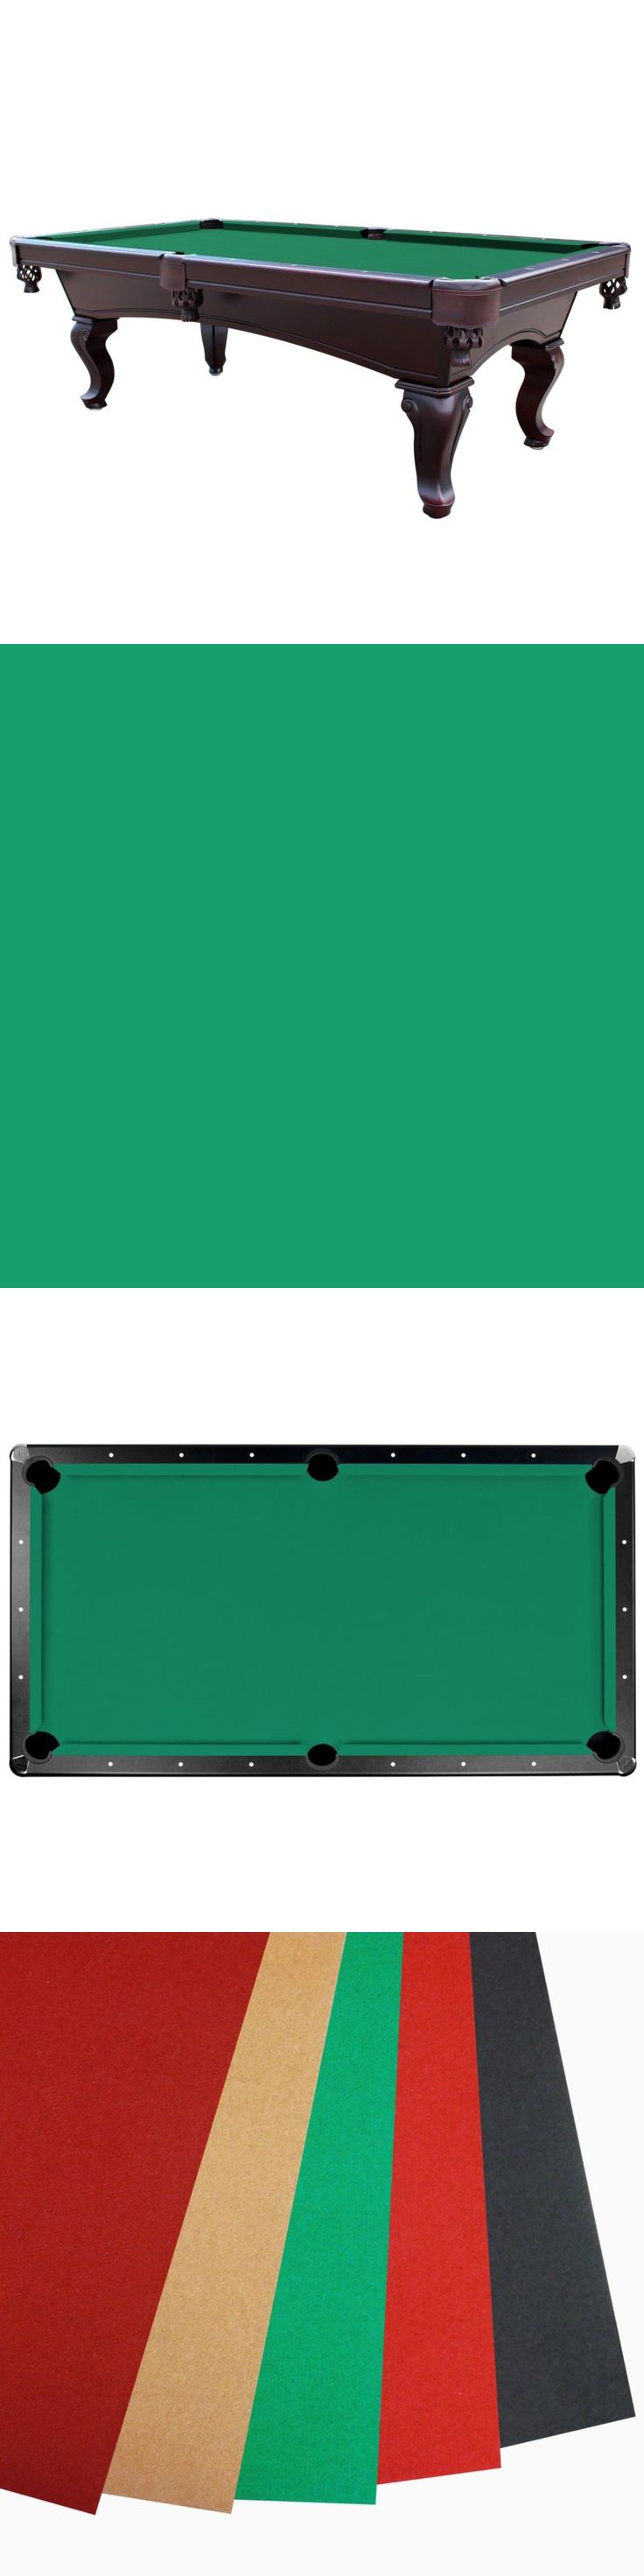 Tables 21213: New Championship Saturn Ii Billiards Cloth Pool Table Felt Green 7 Feet -> BUY IT NOW ONLY: $99.85 on eBay!